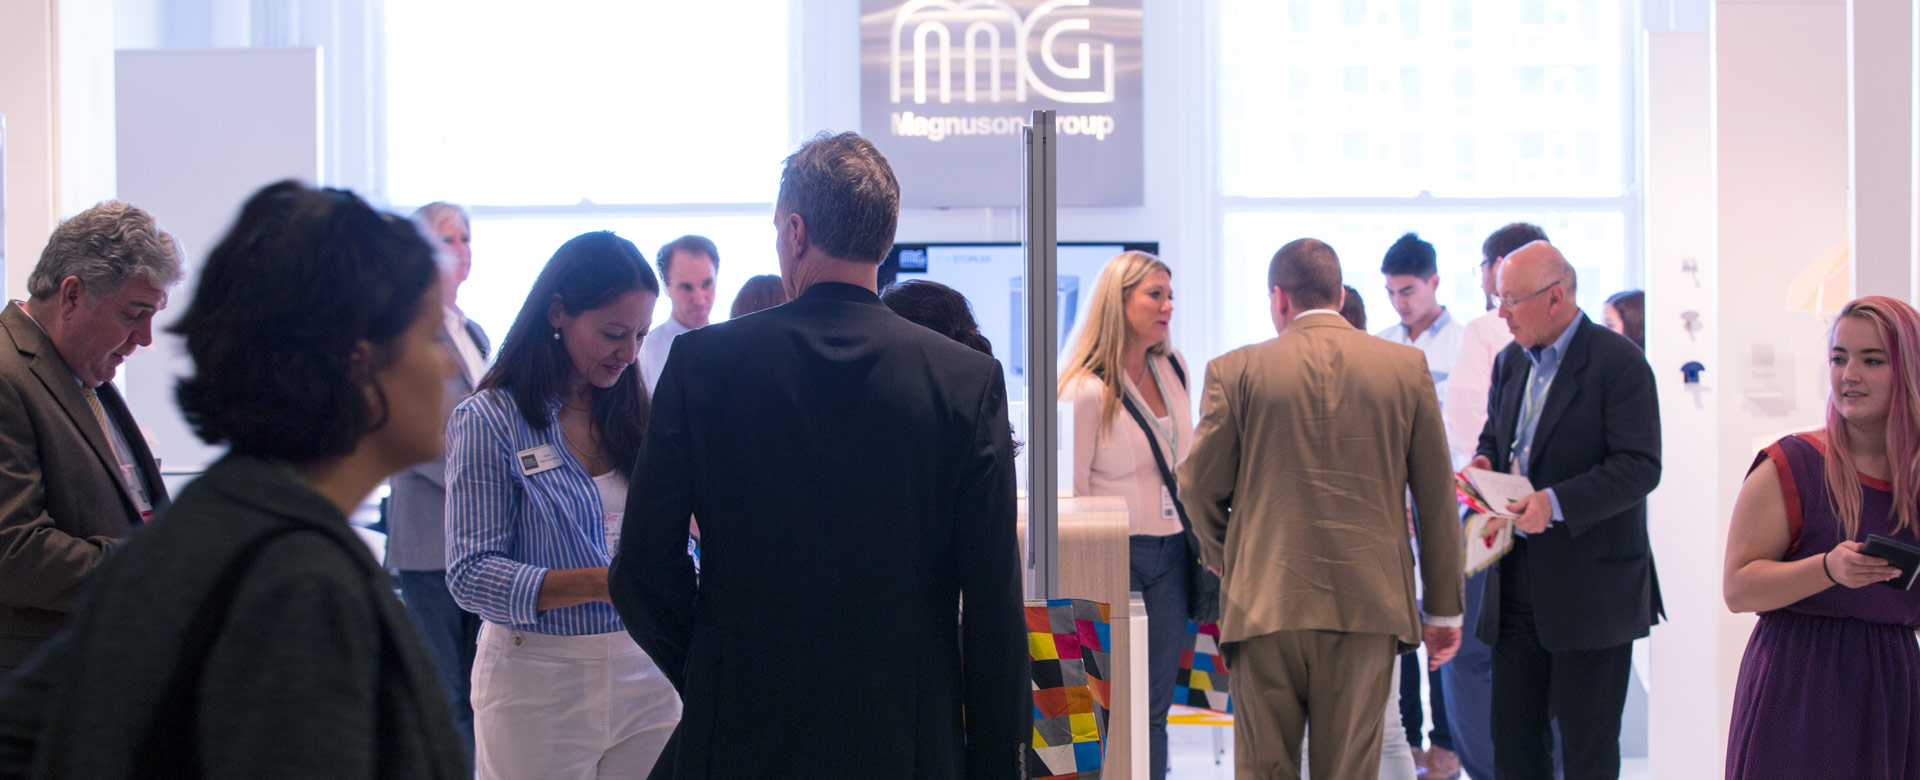 Welcome to Magnuson Group - NeoCon 2015